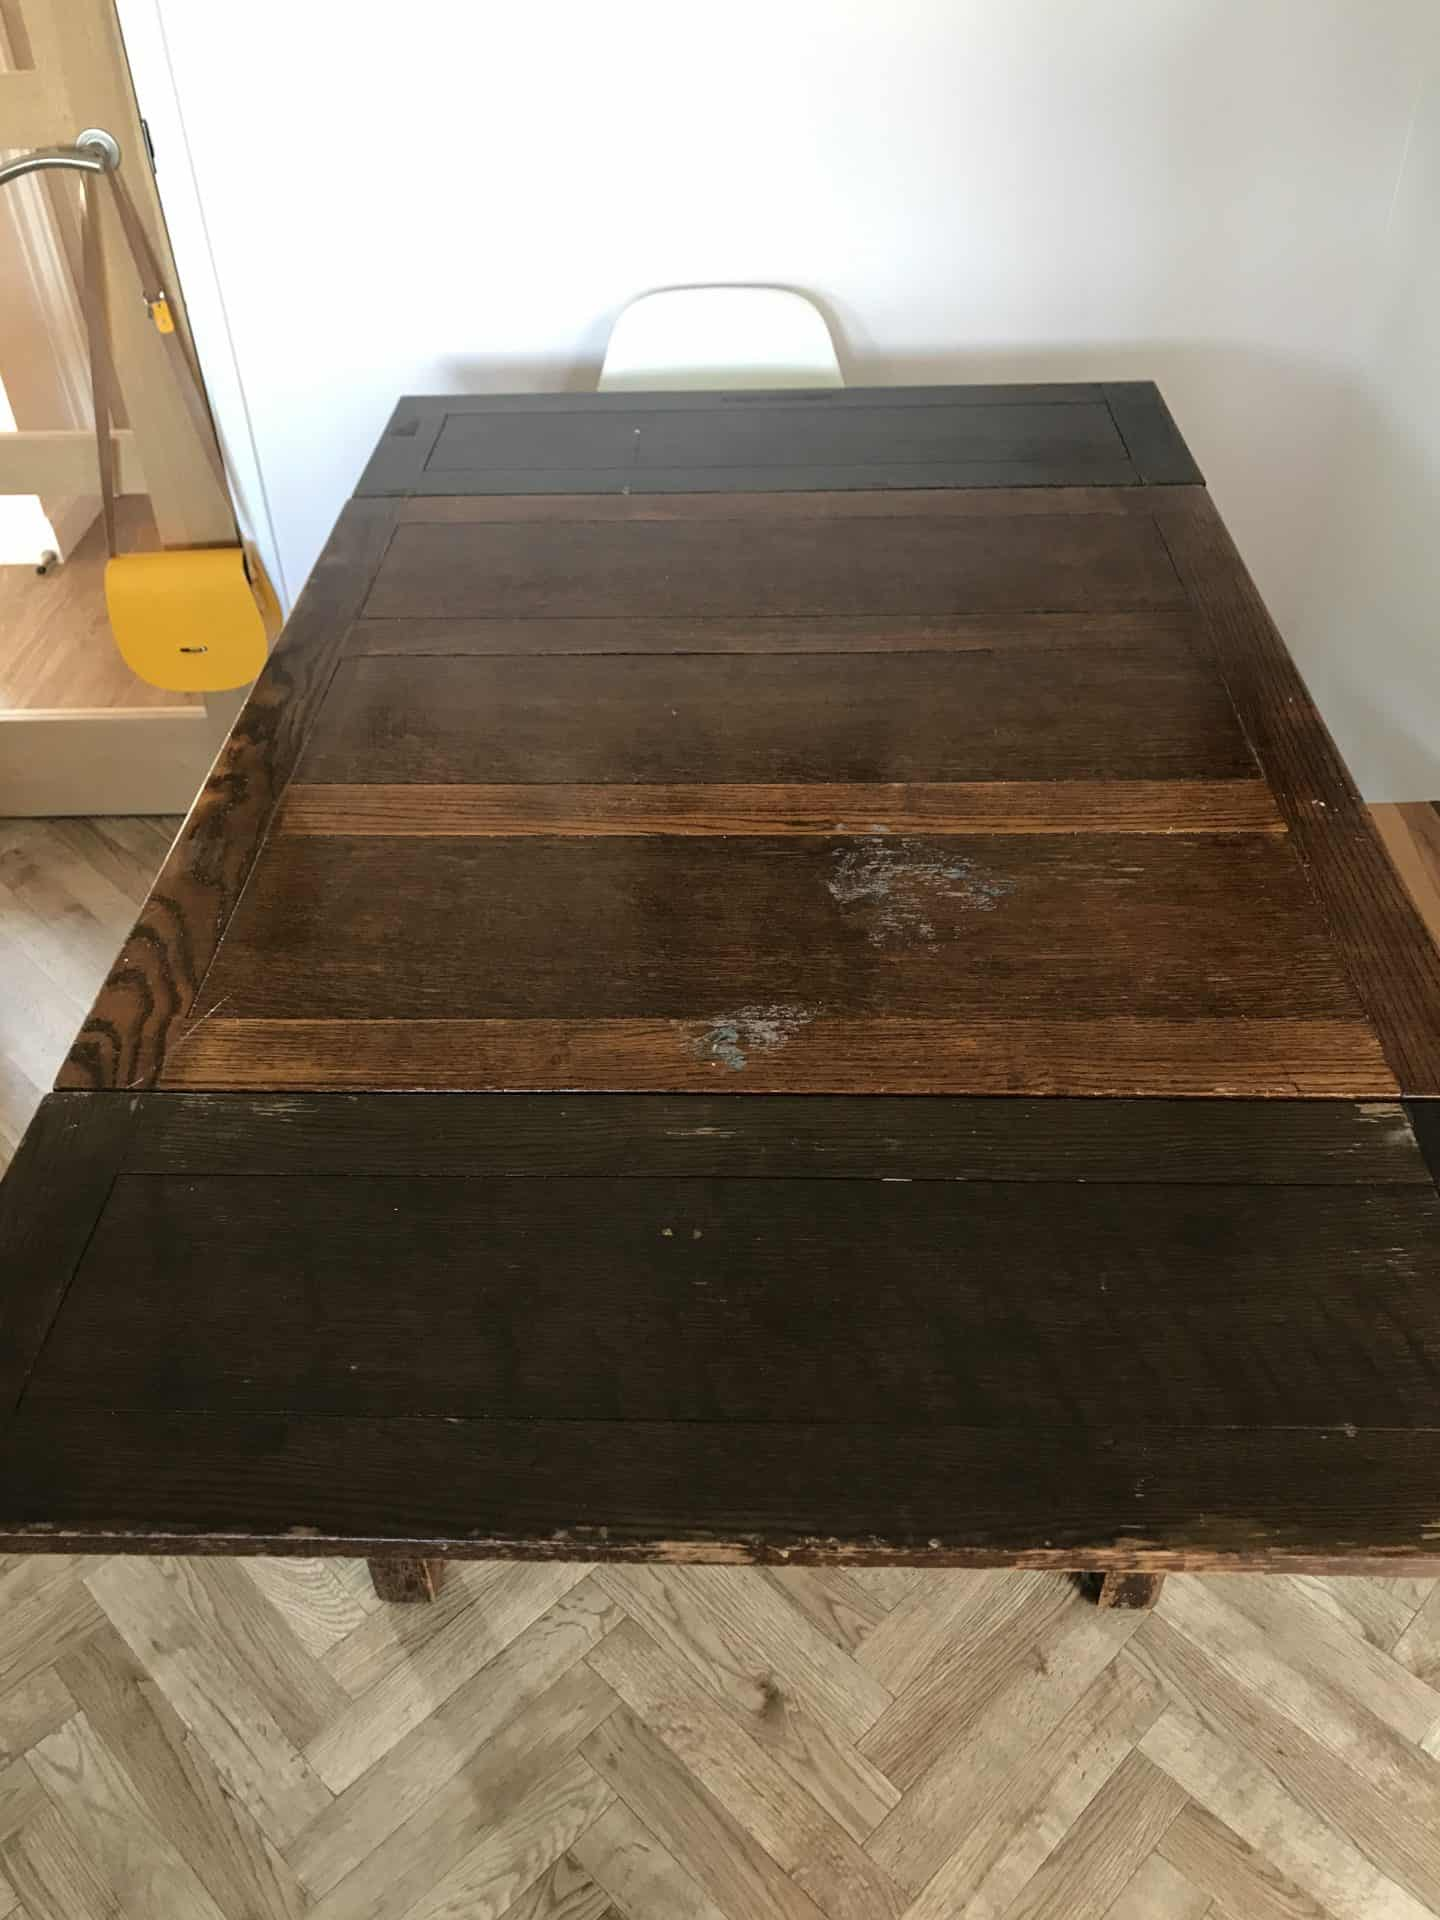 Utility table before restoration